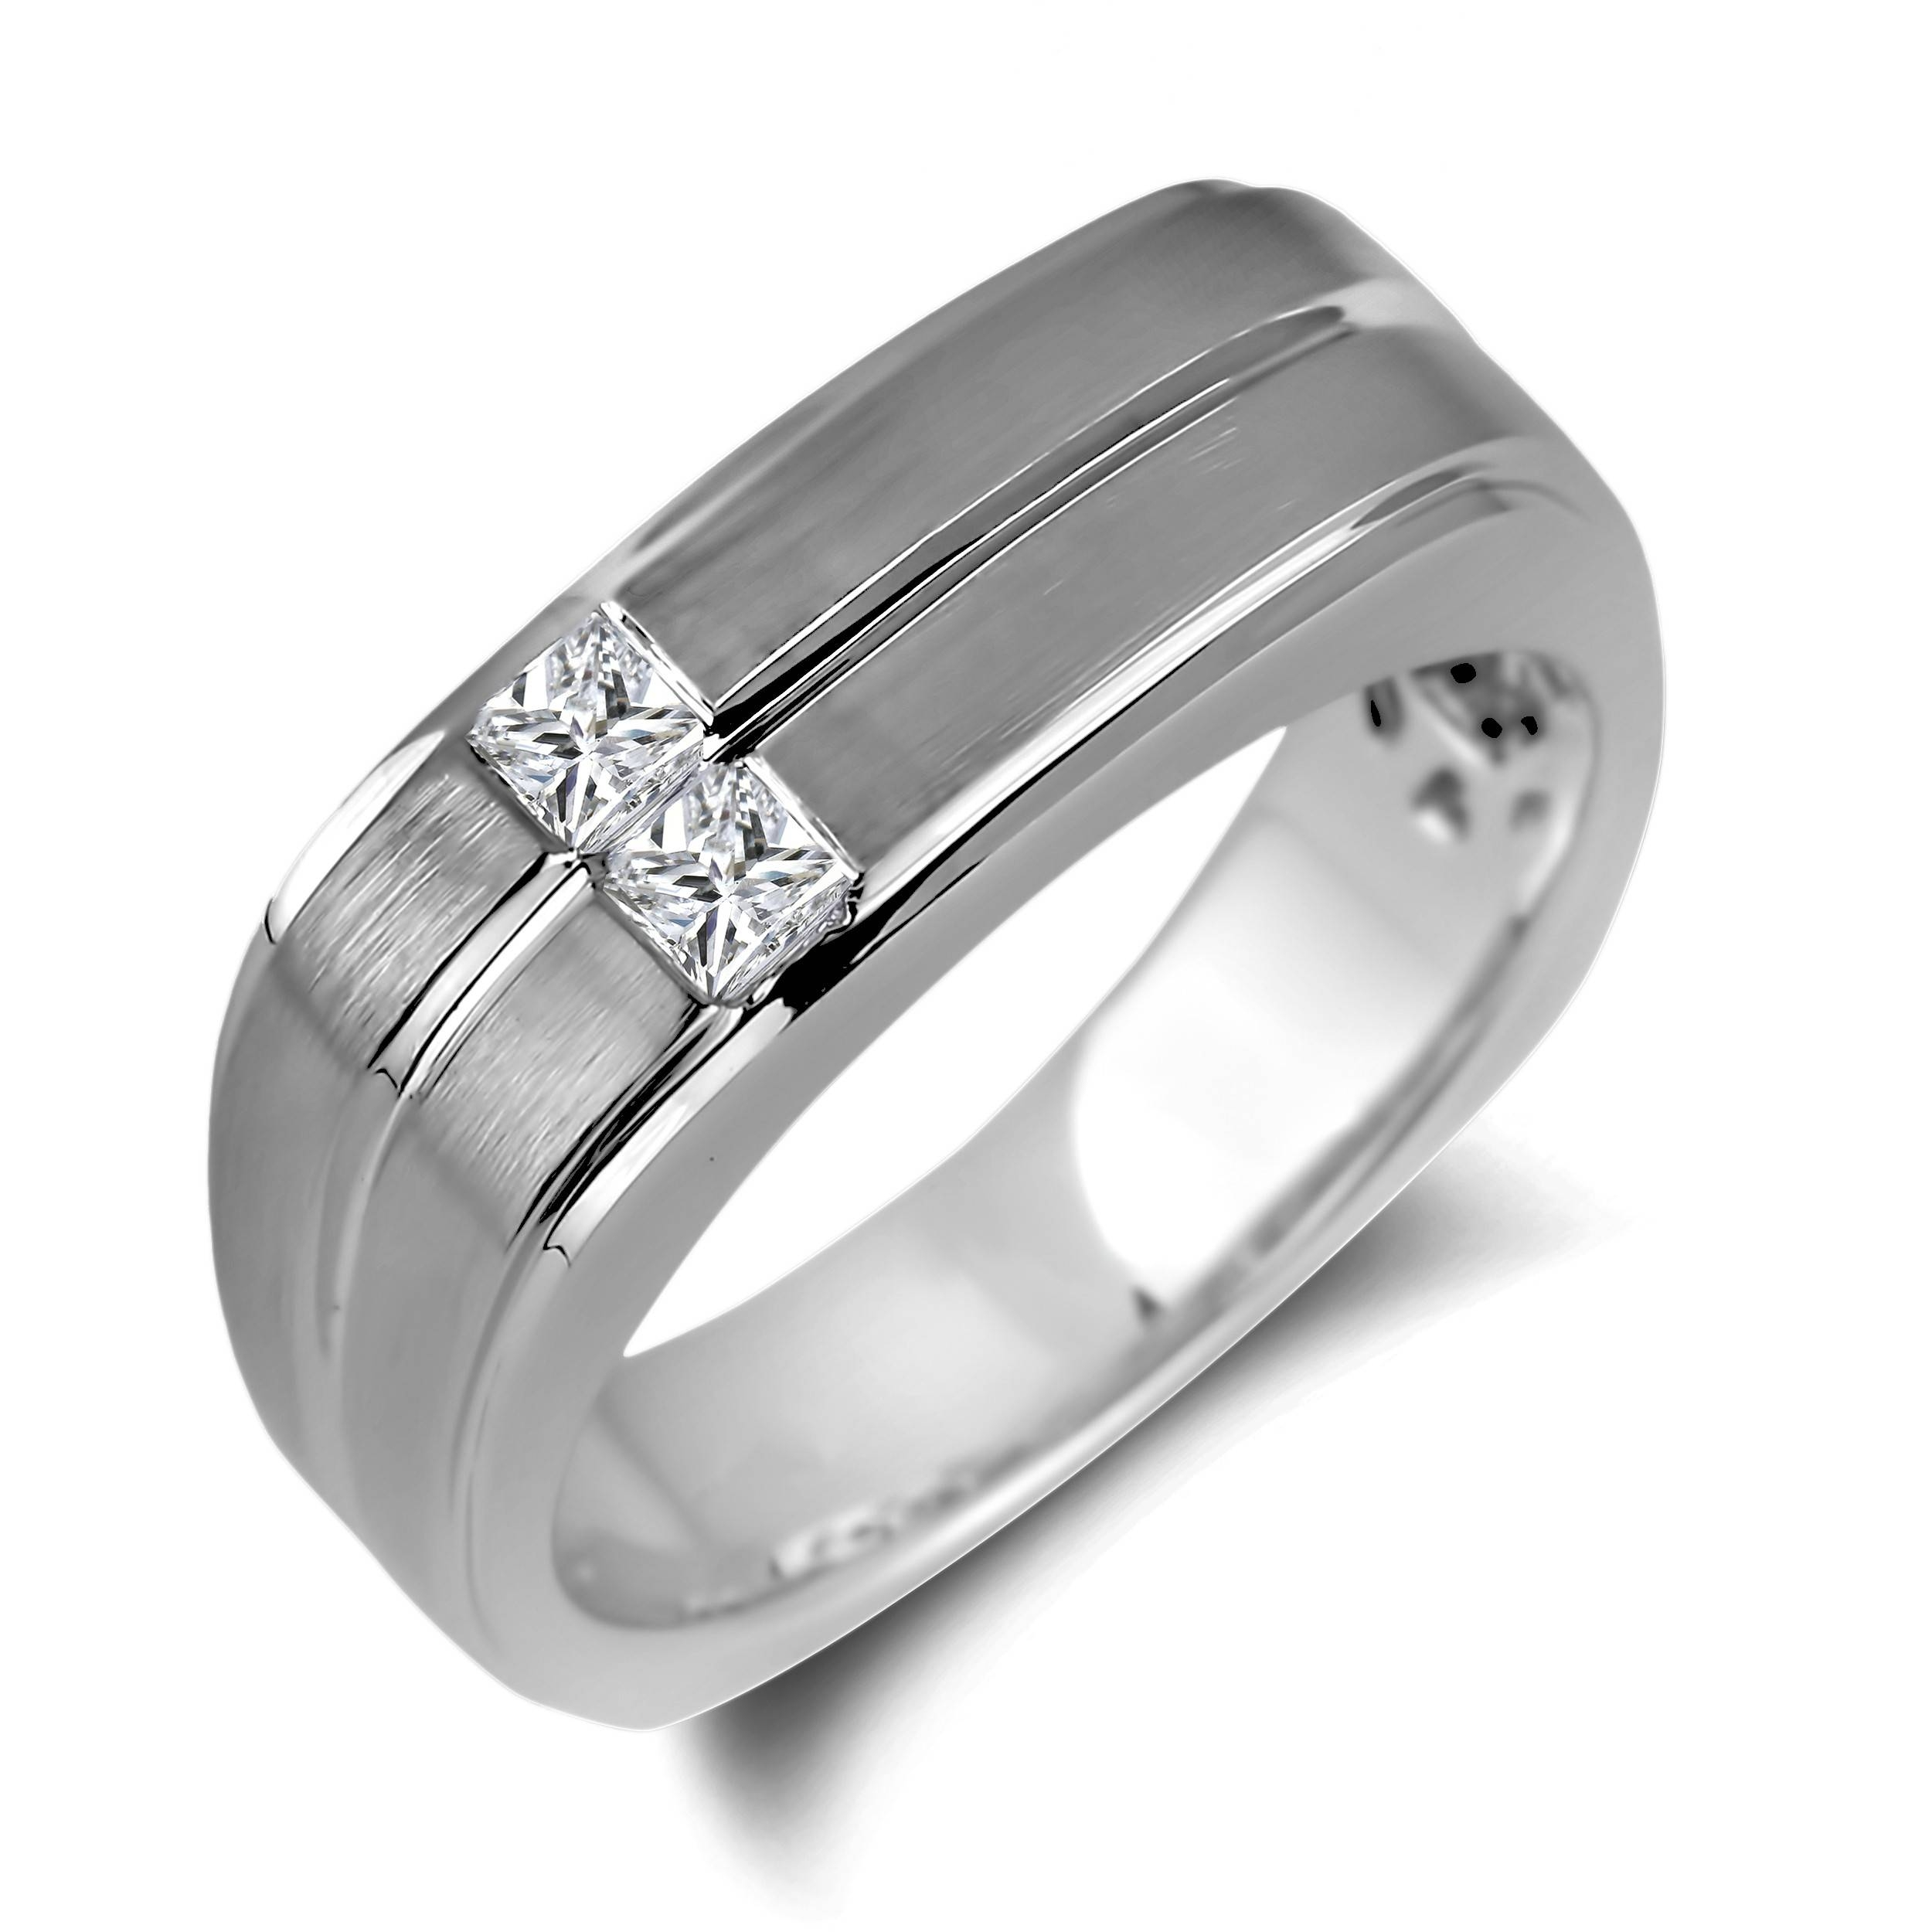 engagement jewelry rings wedding wise ring square is a what halo diamond article